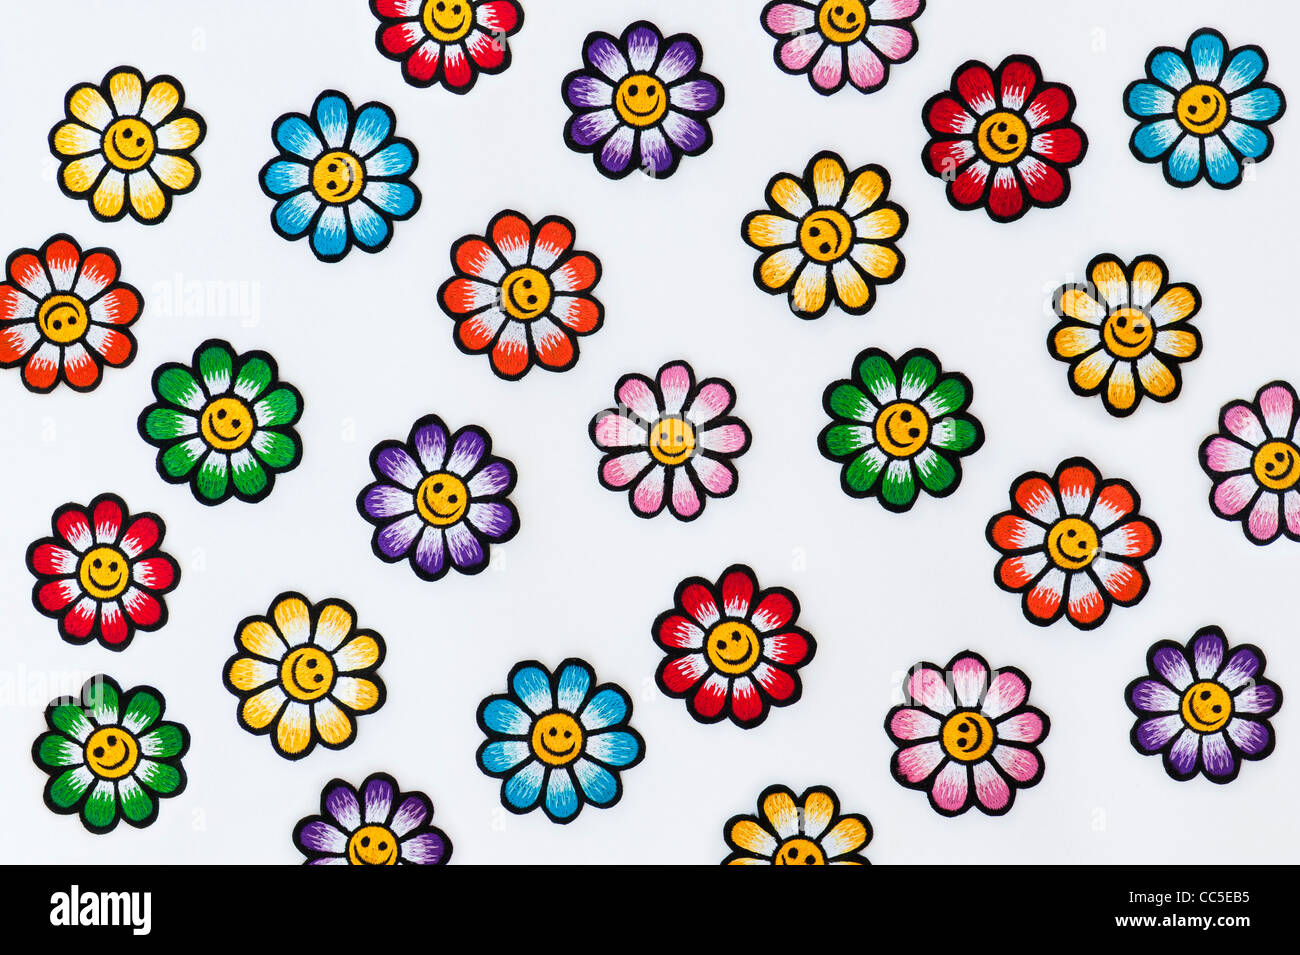 Embroidery iron on patches of Multicoloured smiley face flowers on a Stock Ph